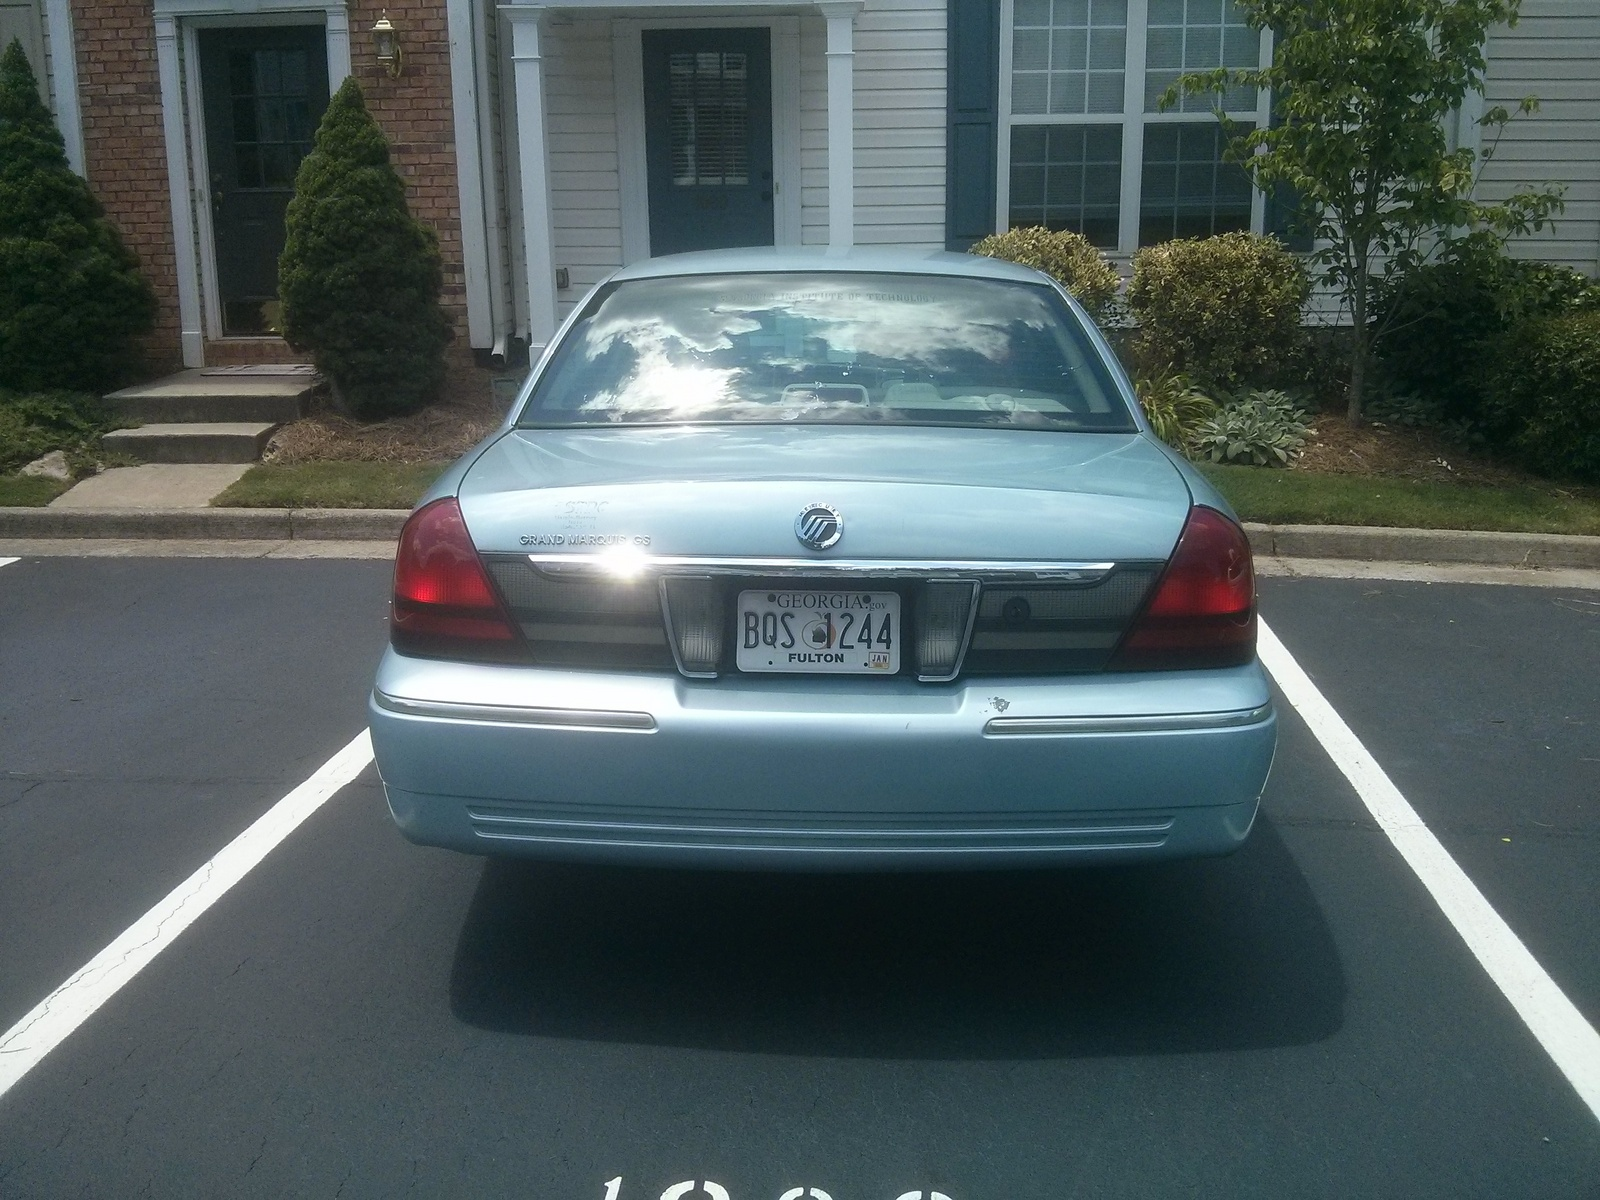 Picture of 2008 Mercury Grand Marquis GS